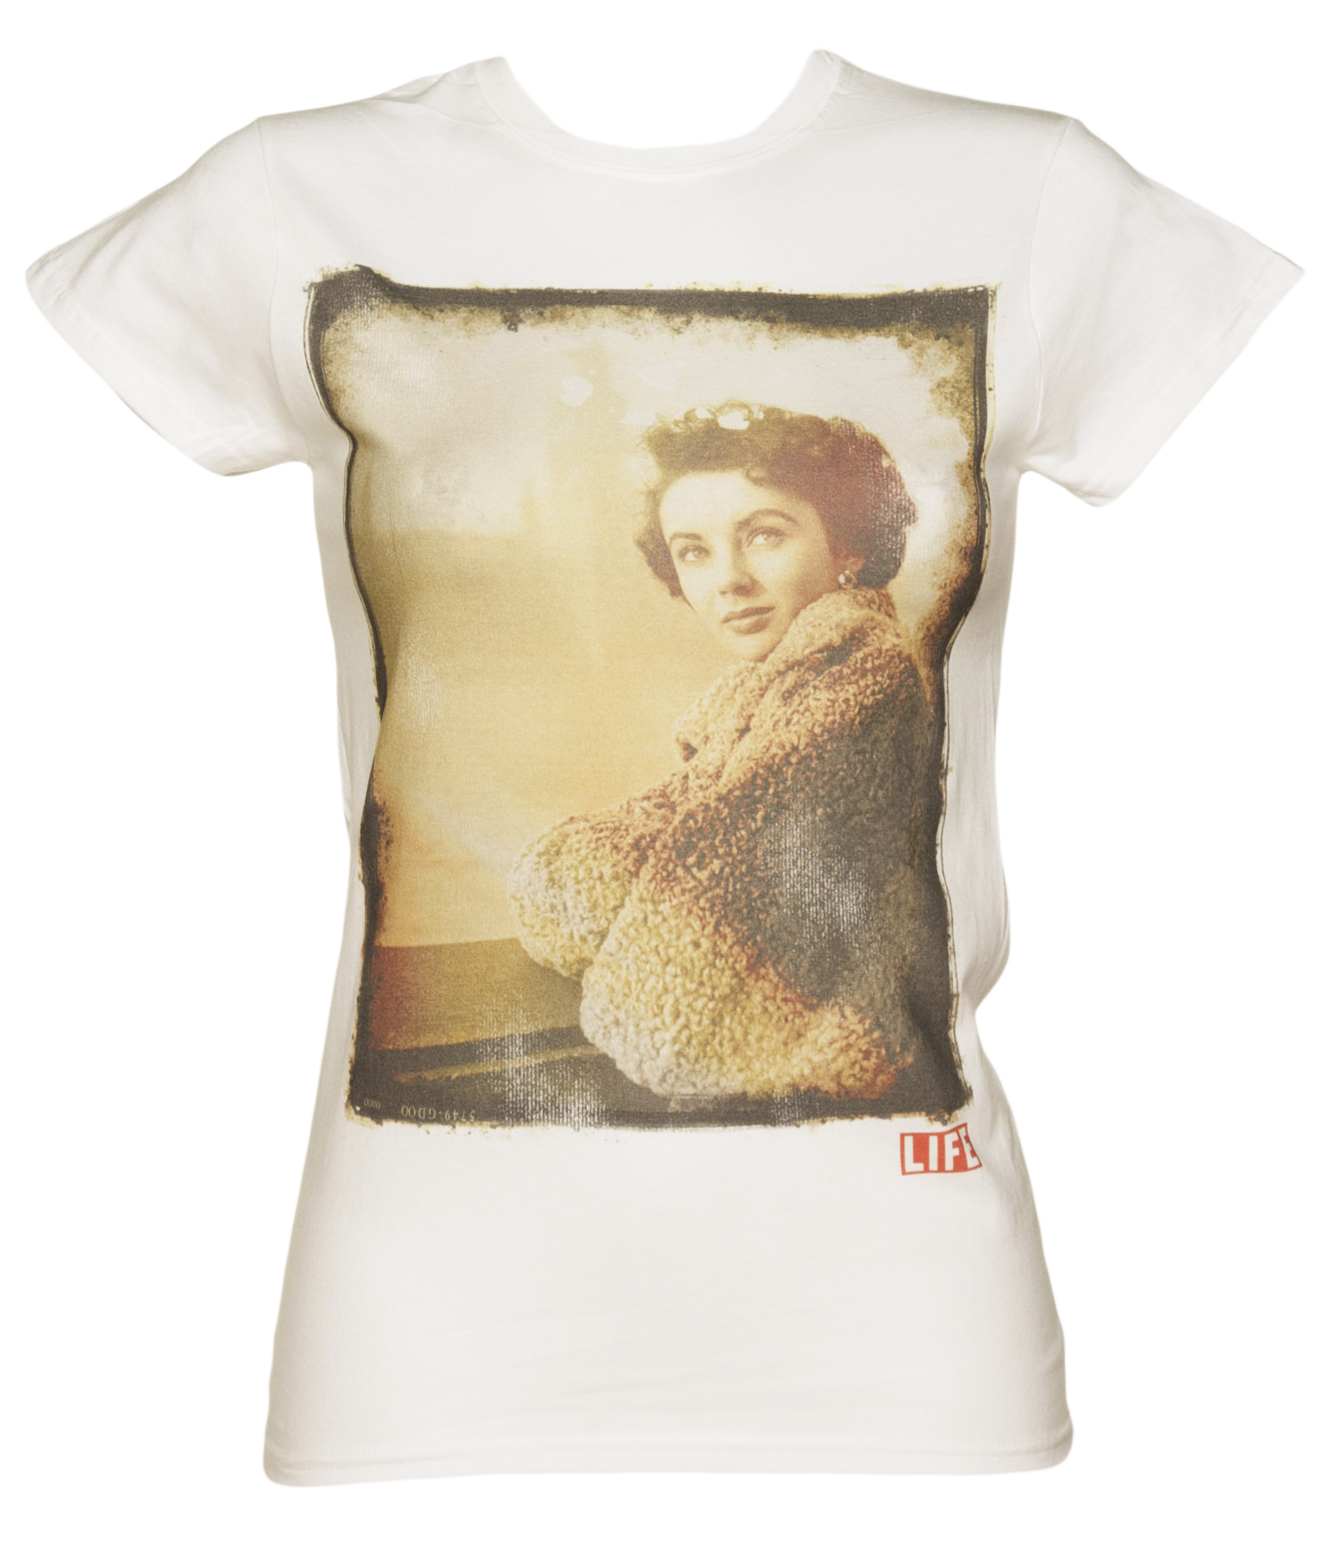 Ladies White Brunnette Hollywood Icon Life product image